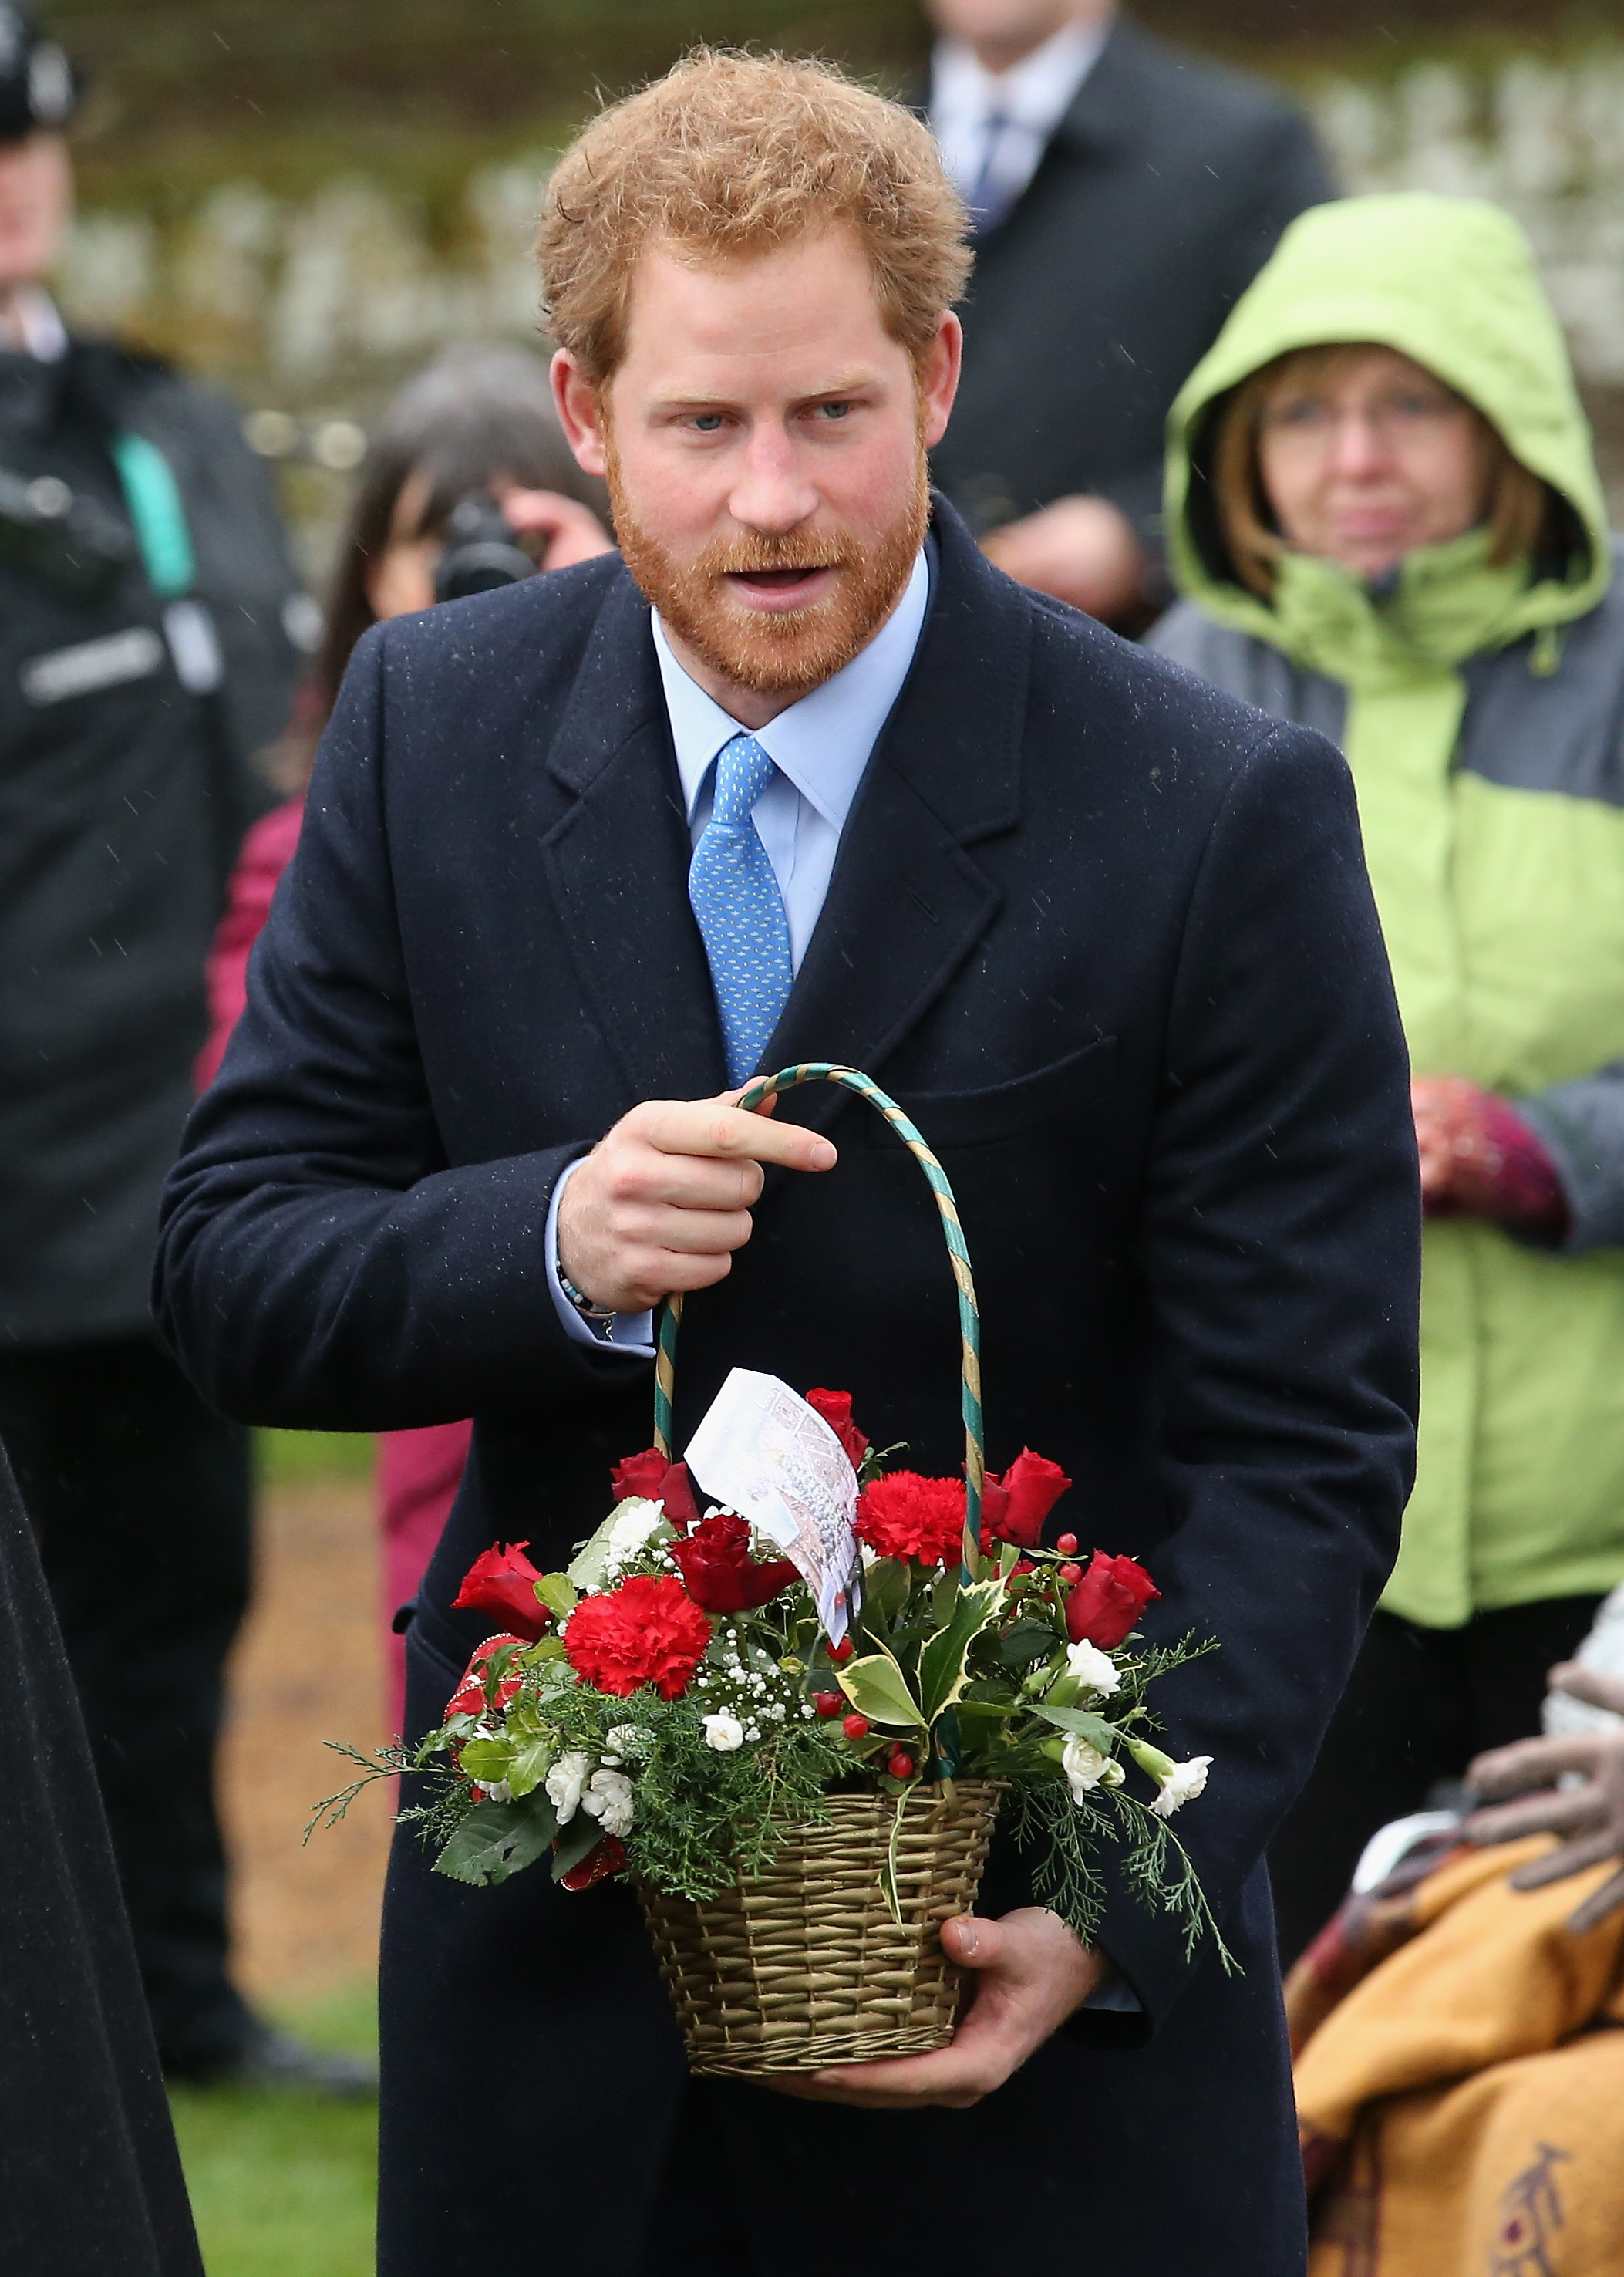 KING'S LYNN, ENGLAND - DECEMBER 25: Prince Harry meets members of the public as he attends a Christmas Day church service at Sandringham on December 25, 2015 in King's Lynn, England. (Photo by Chris Jackson/Getty Images)